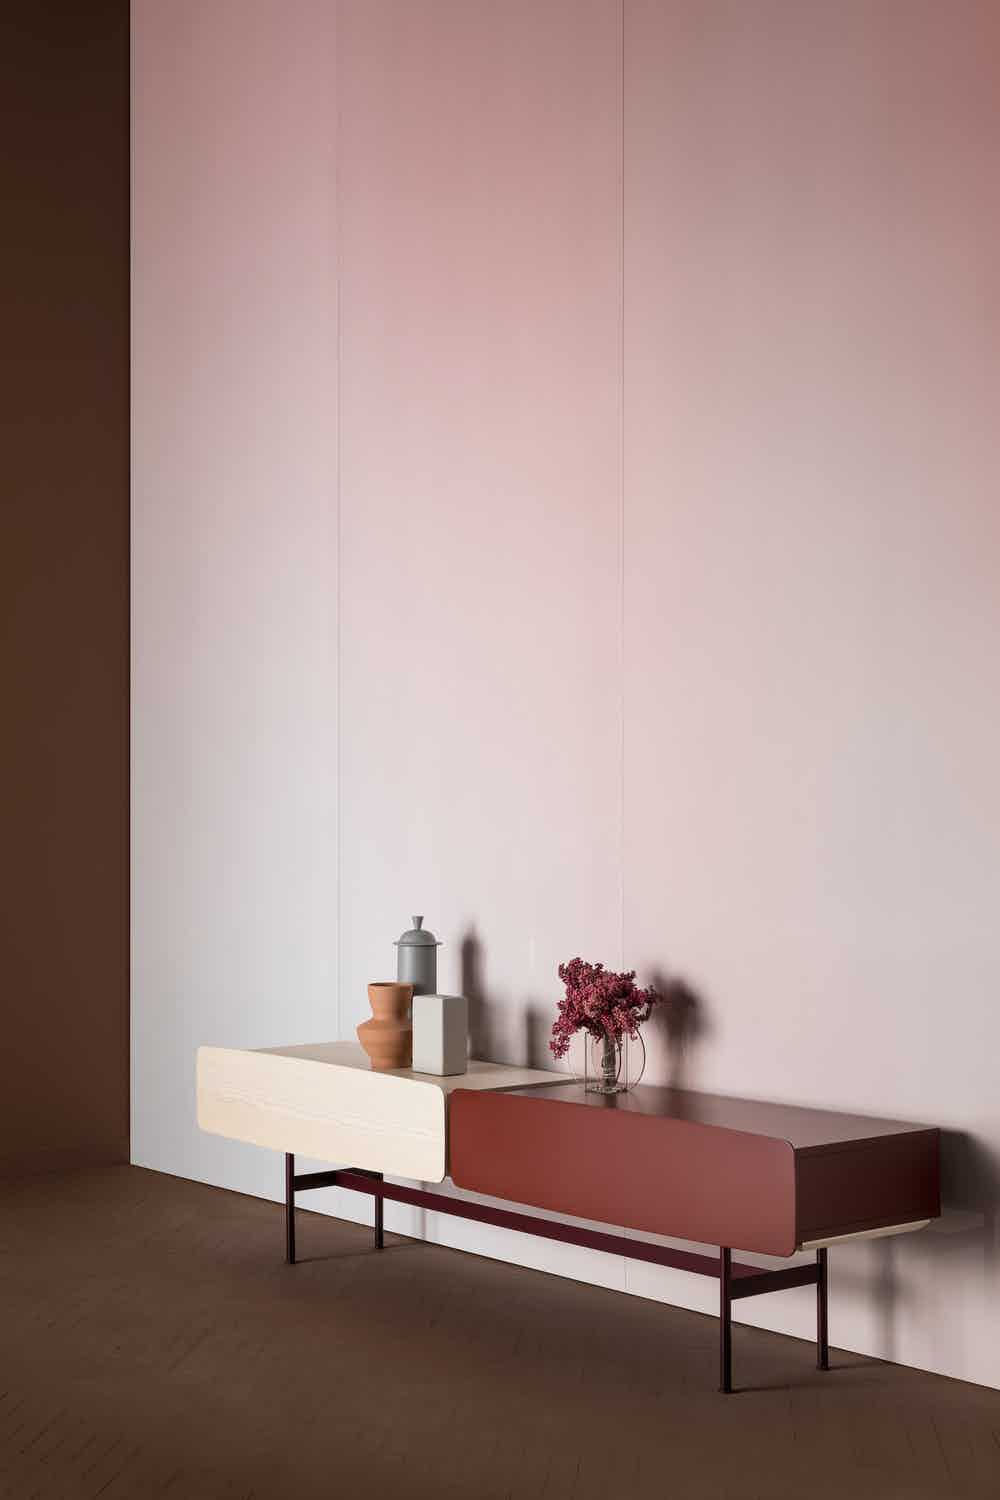 Sp01 design yee storage rose insitu haute living